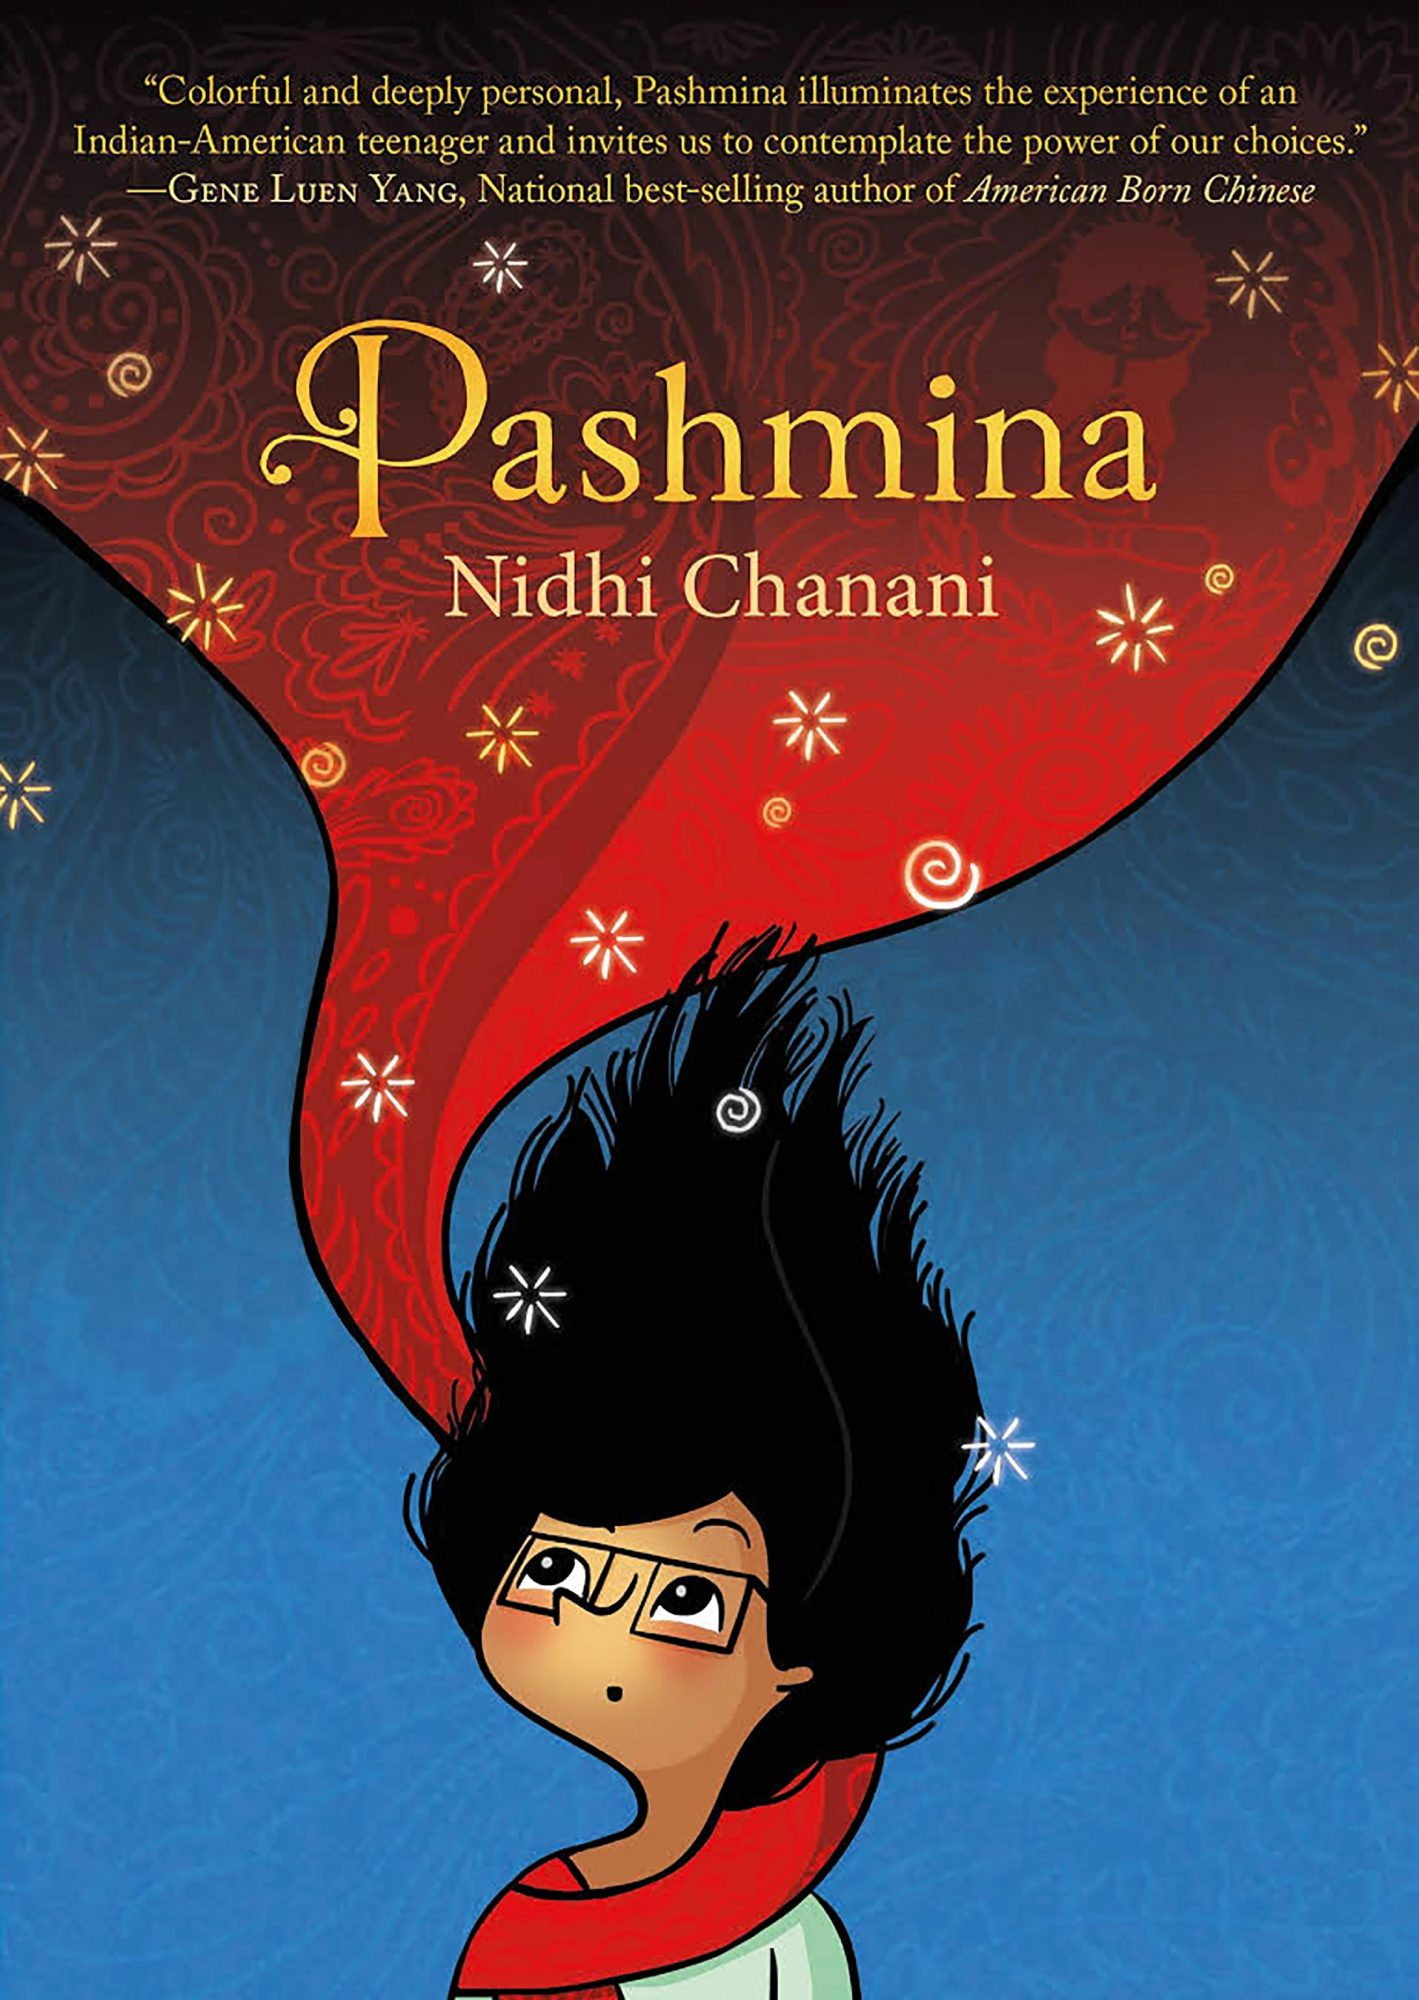 PashminaBook by Nidhi Chanani CR: First Second